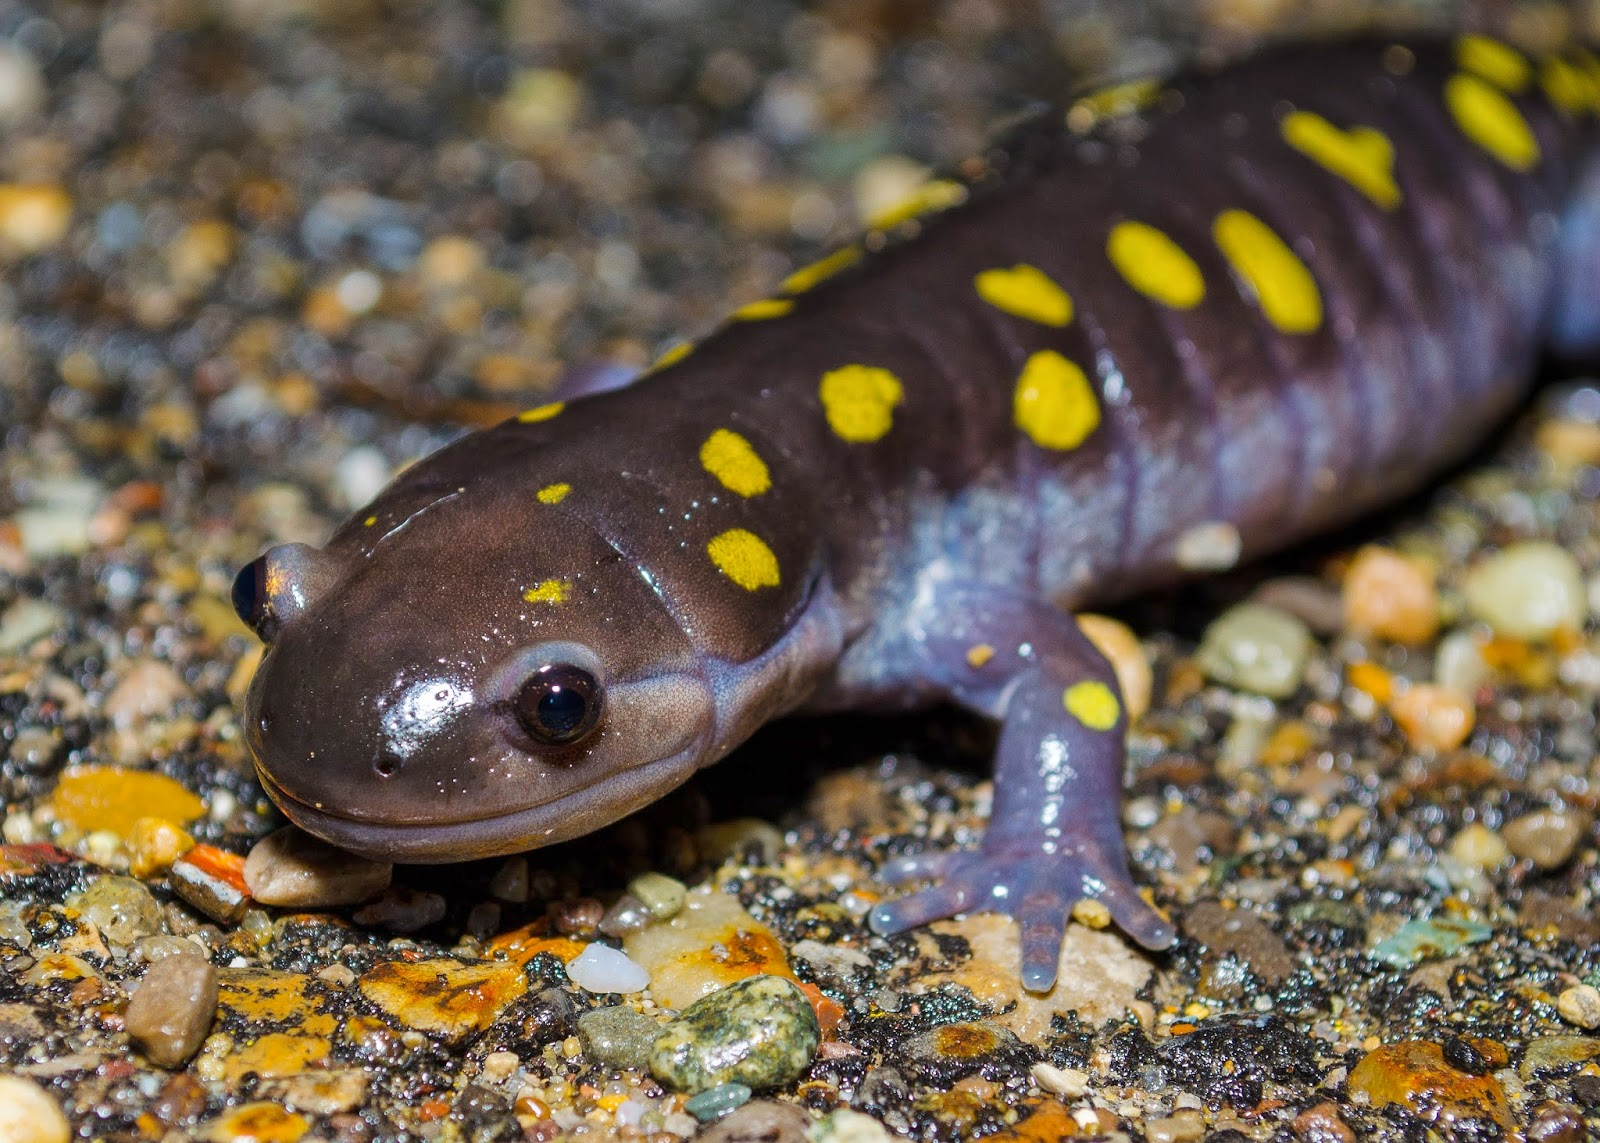 Spotted Salamander Ohio